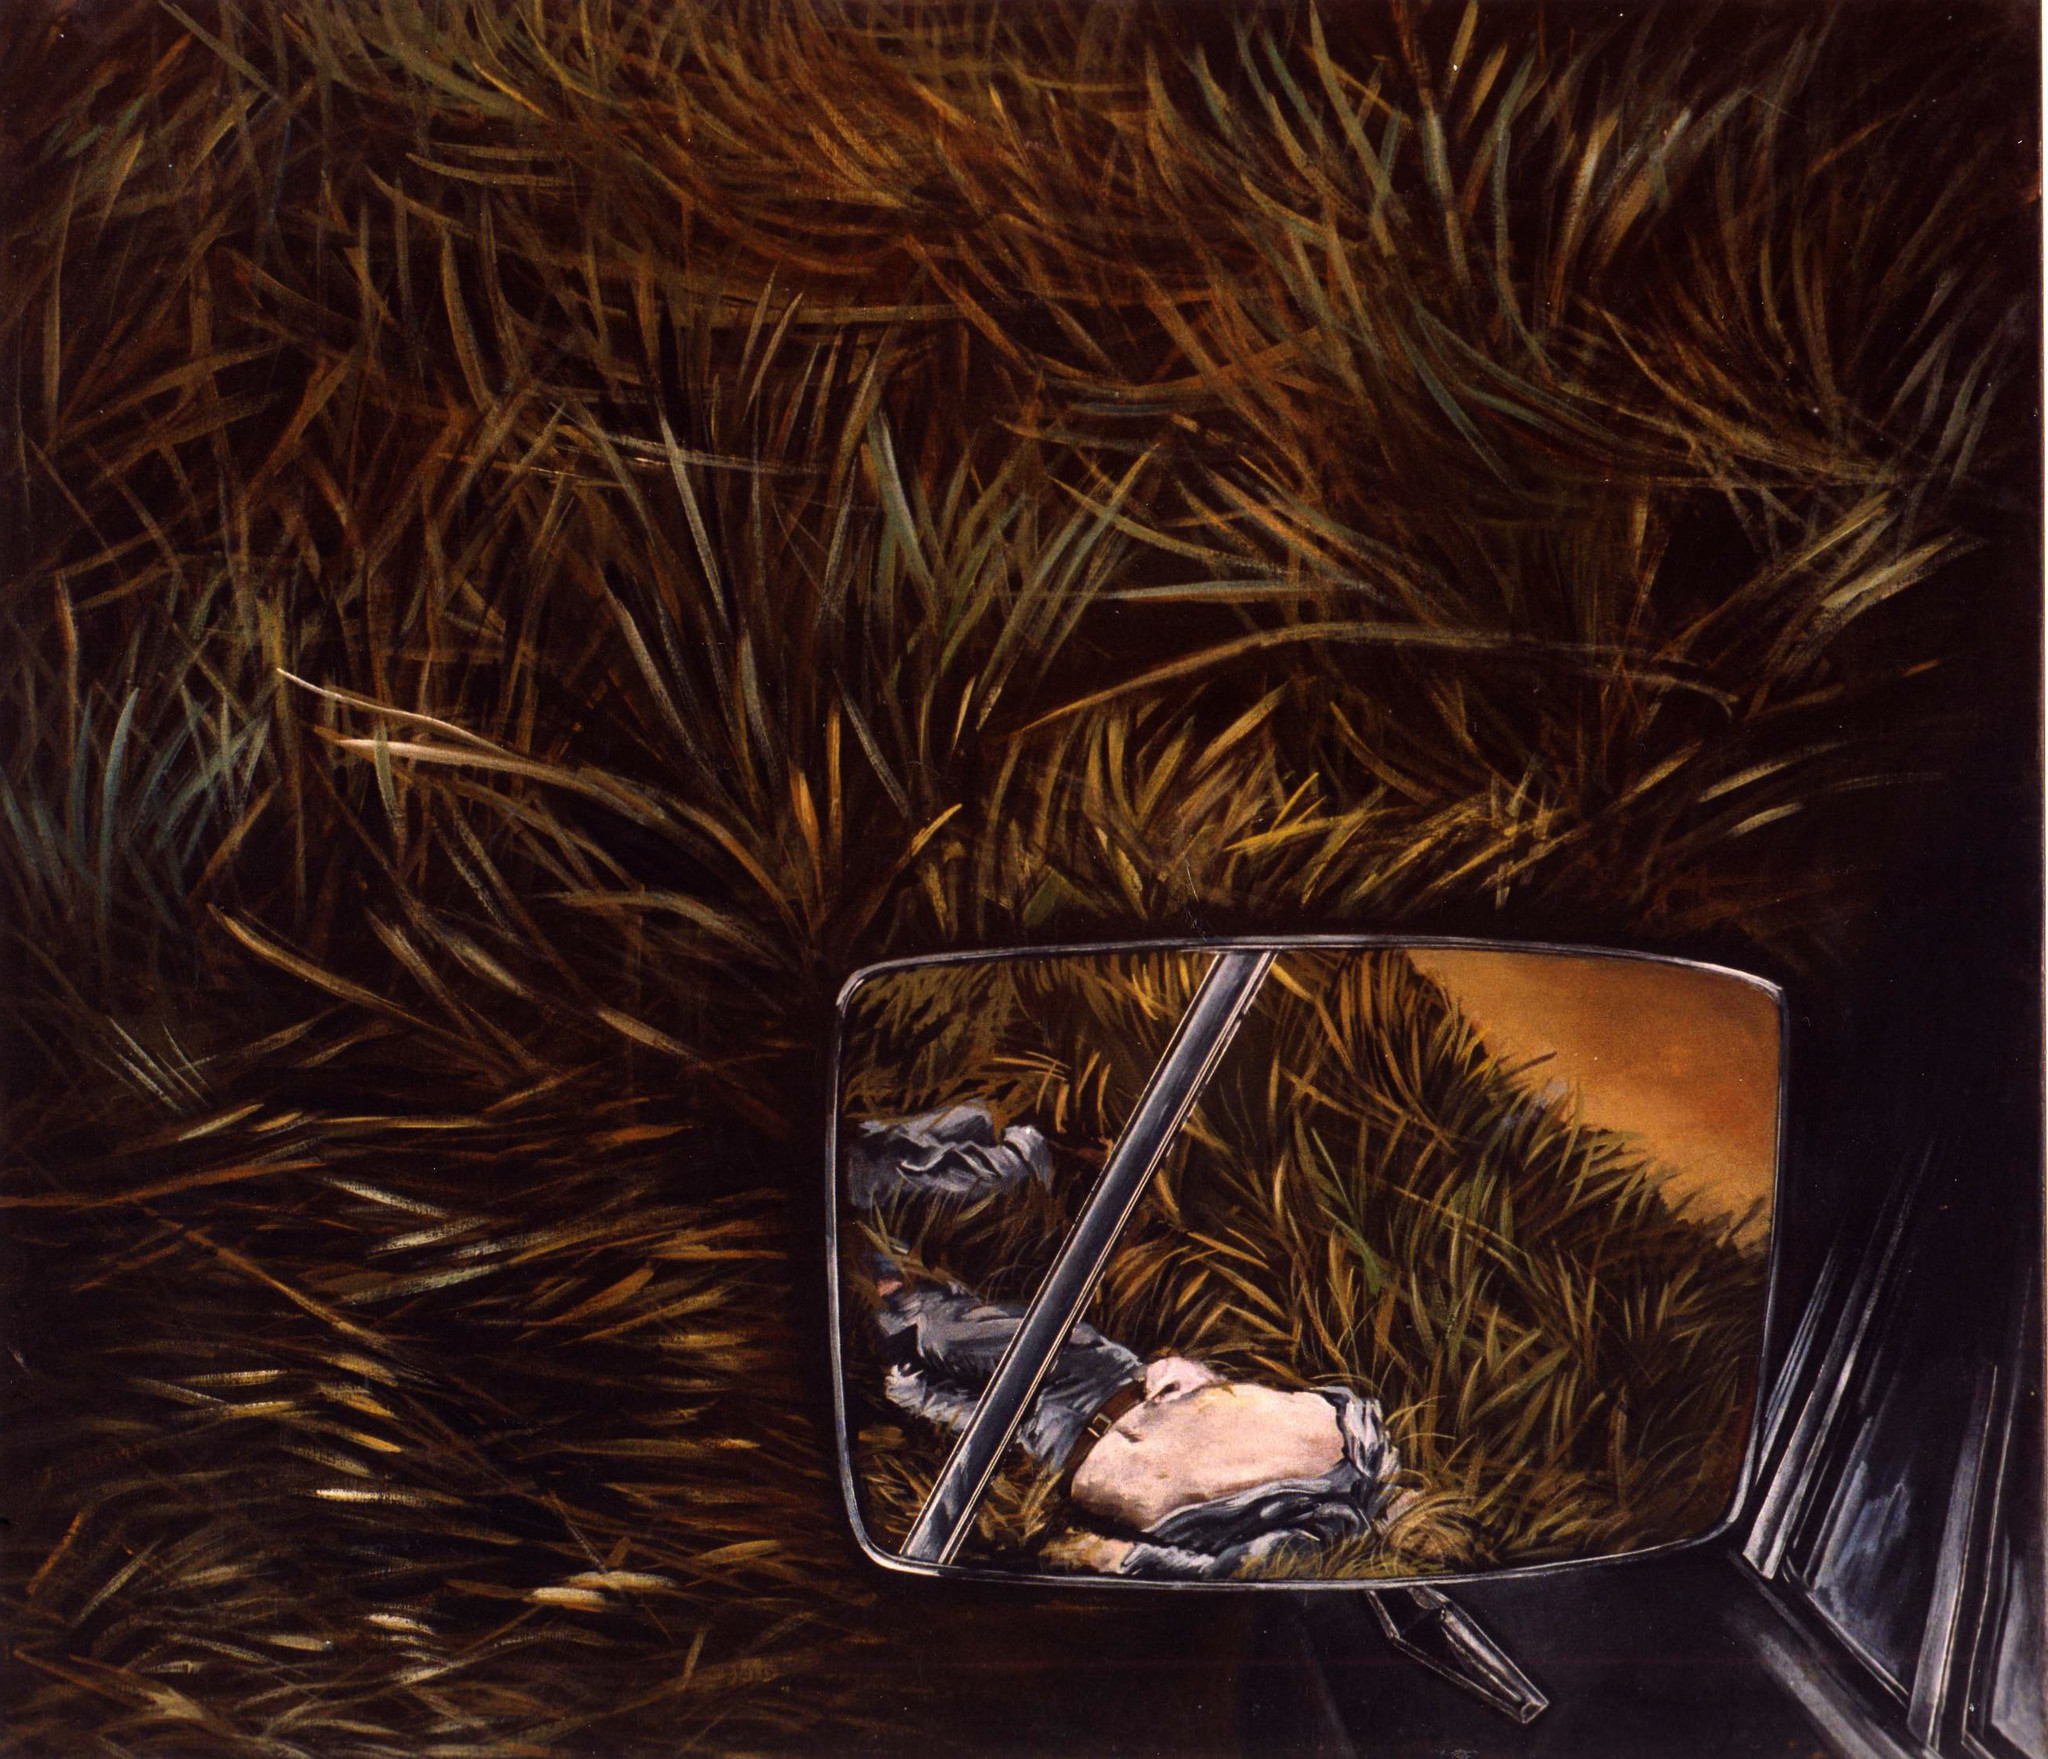 """Diana Dowek, """"Landscape with side-view mirror II,"""" 1974, acrylic on canvas."""